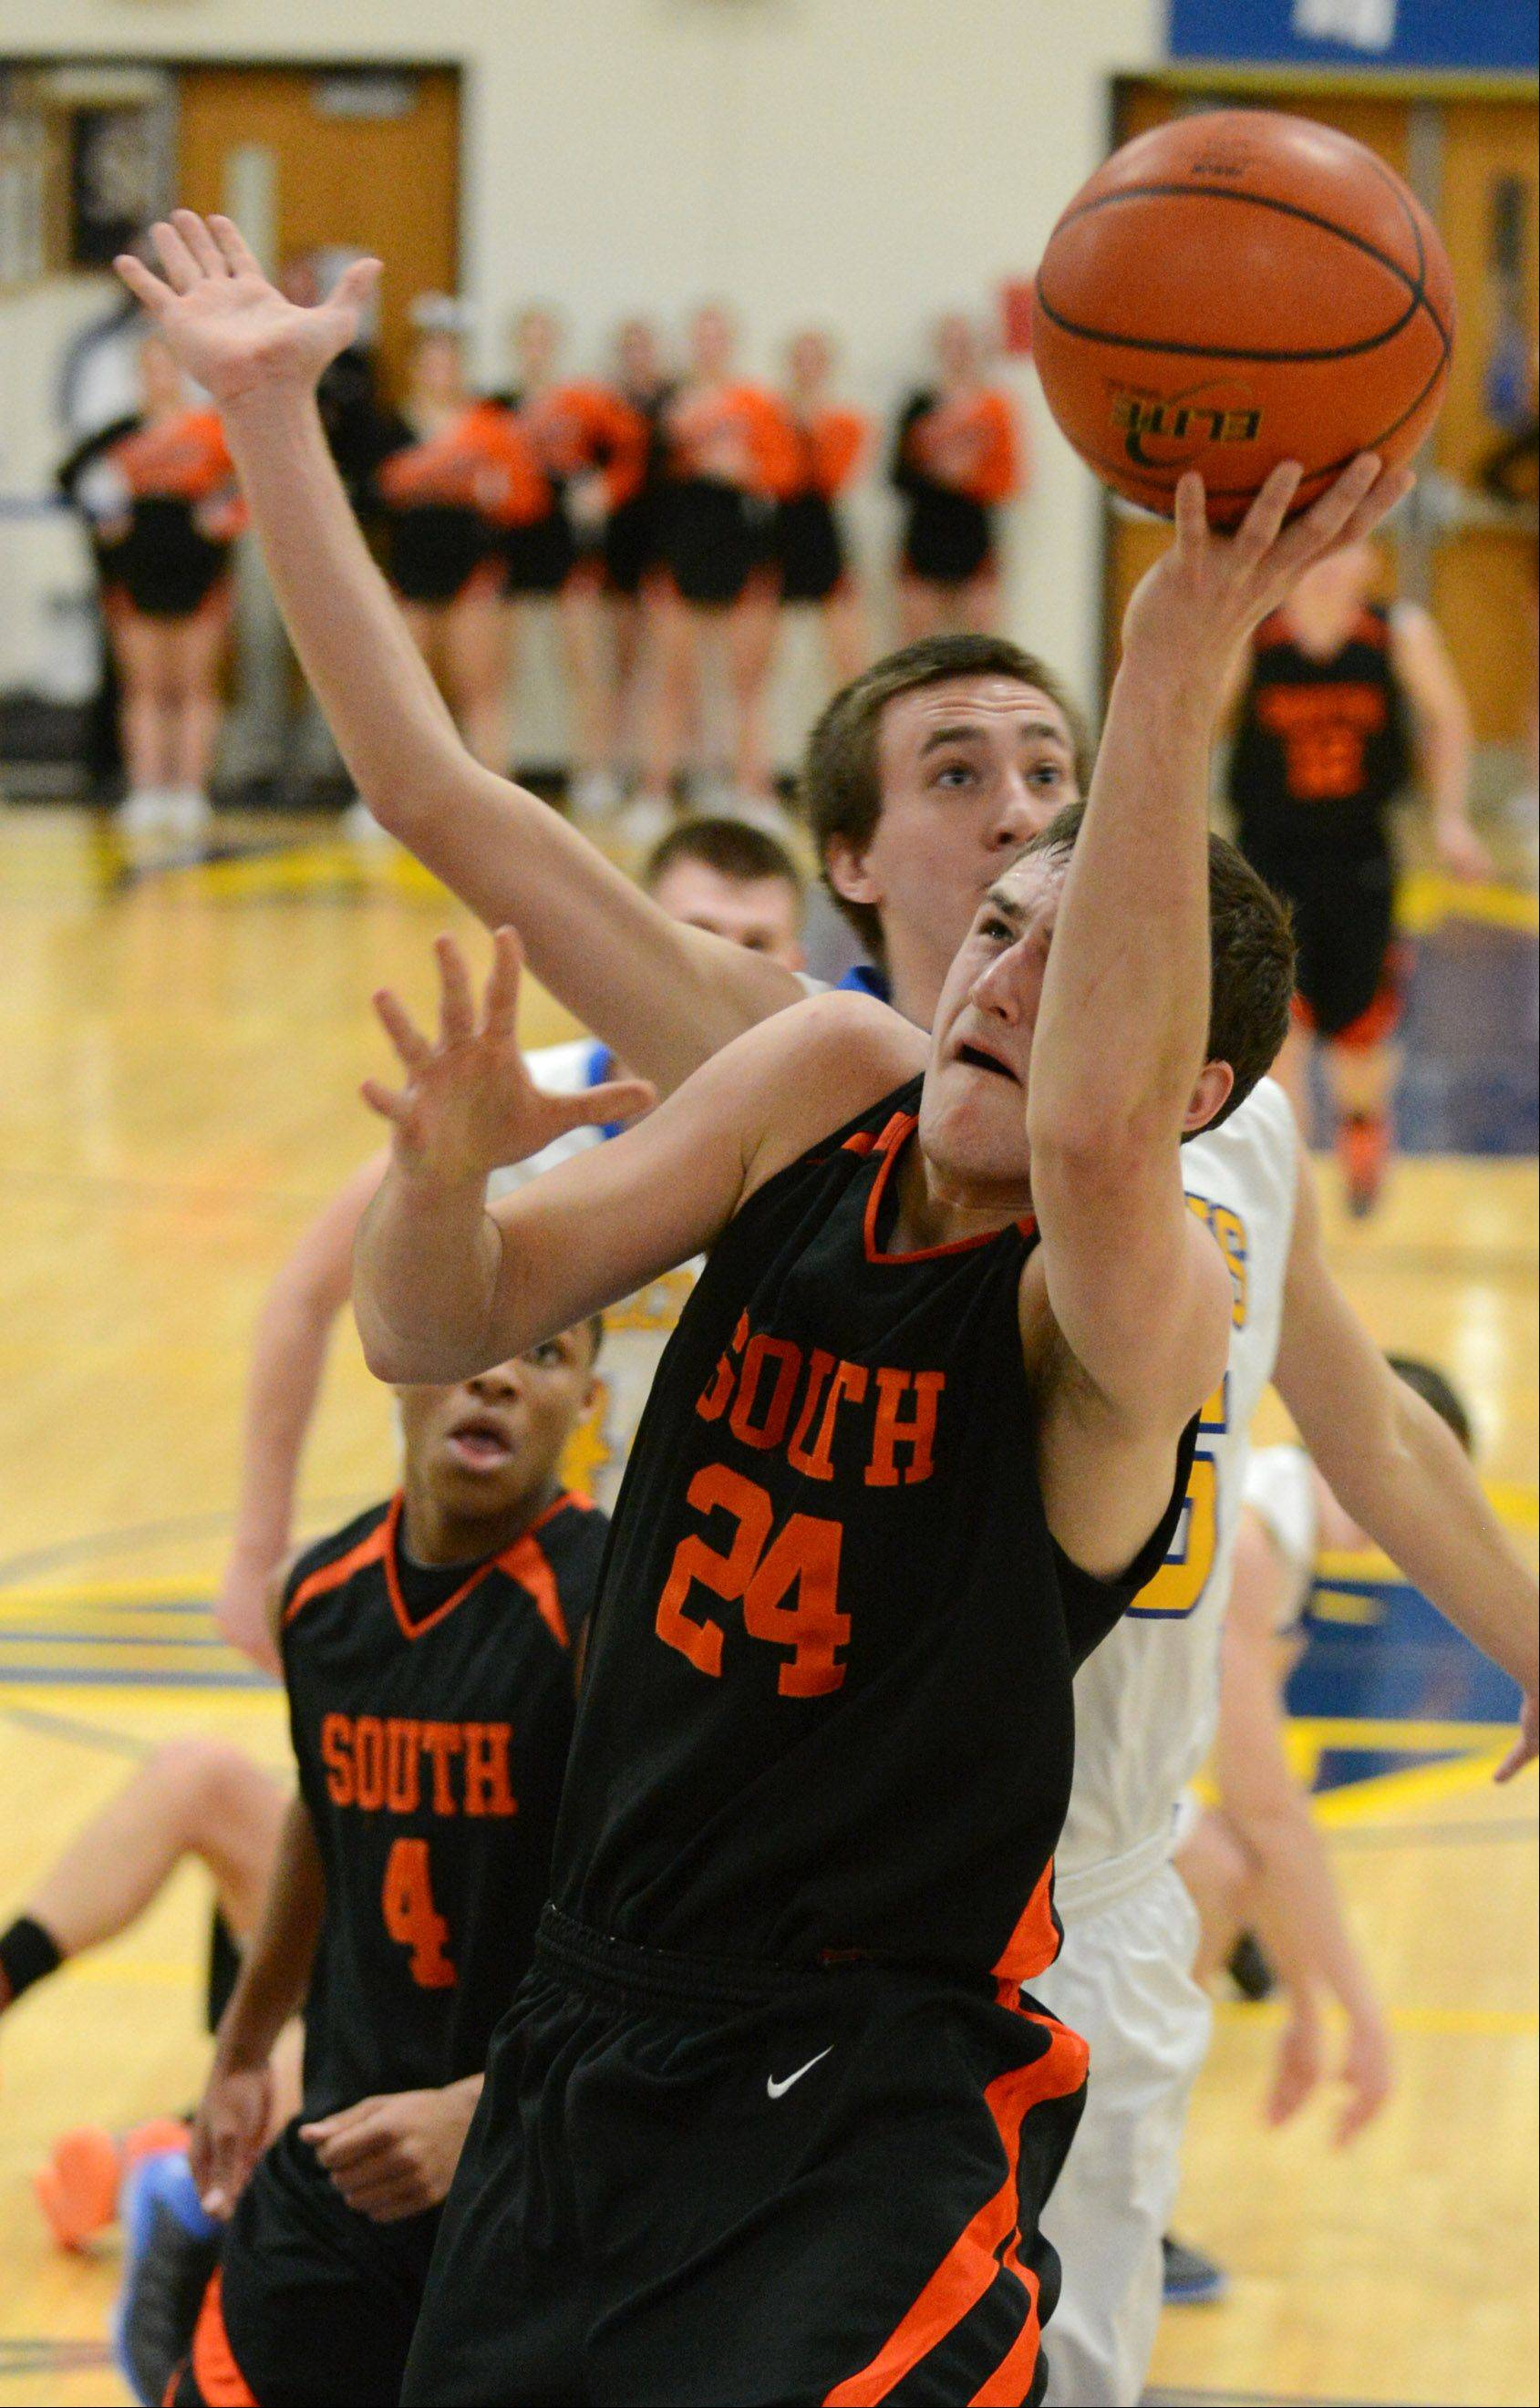 Wheaton Warrenville South's Matt Kienzle takes a shot.